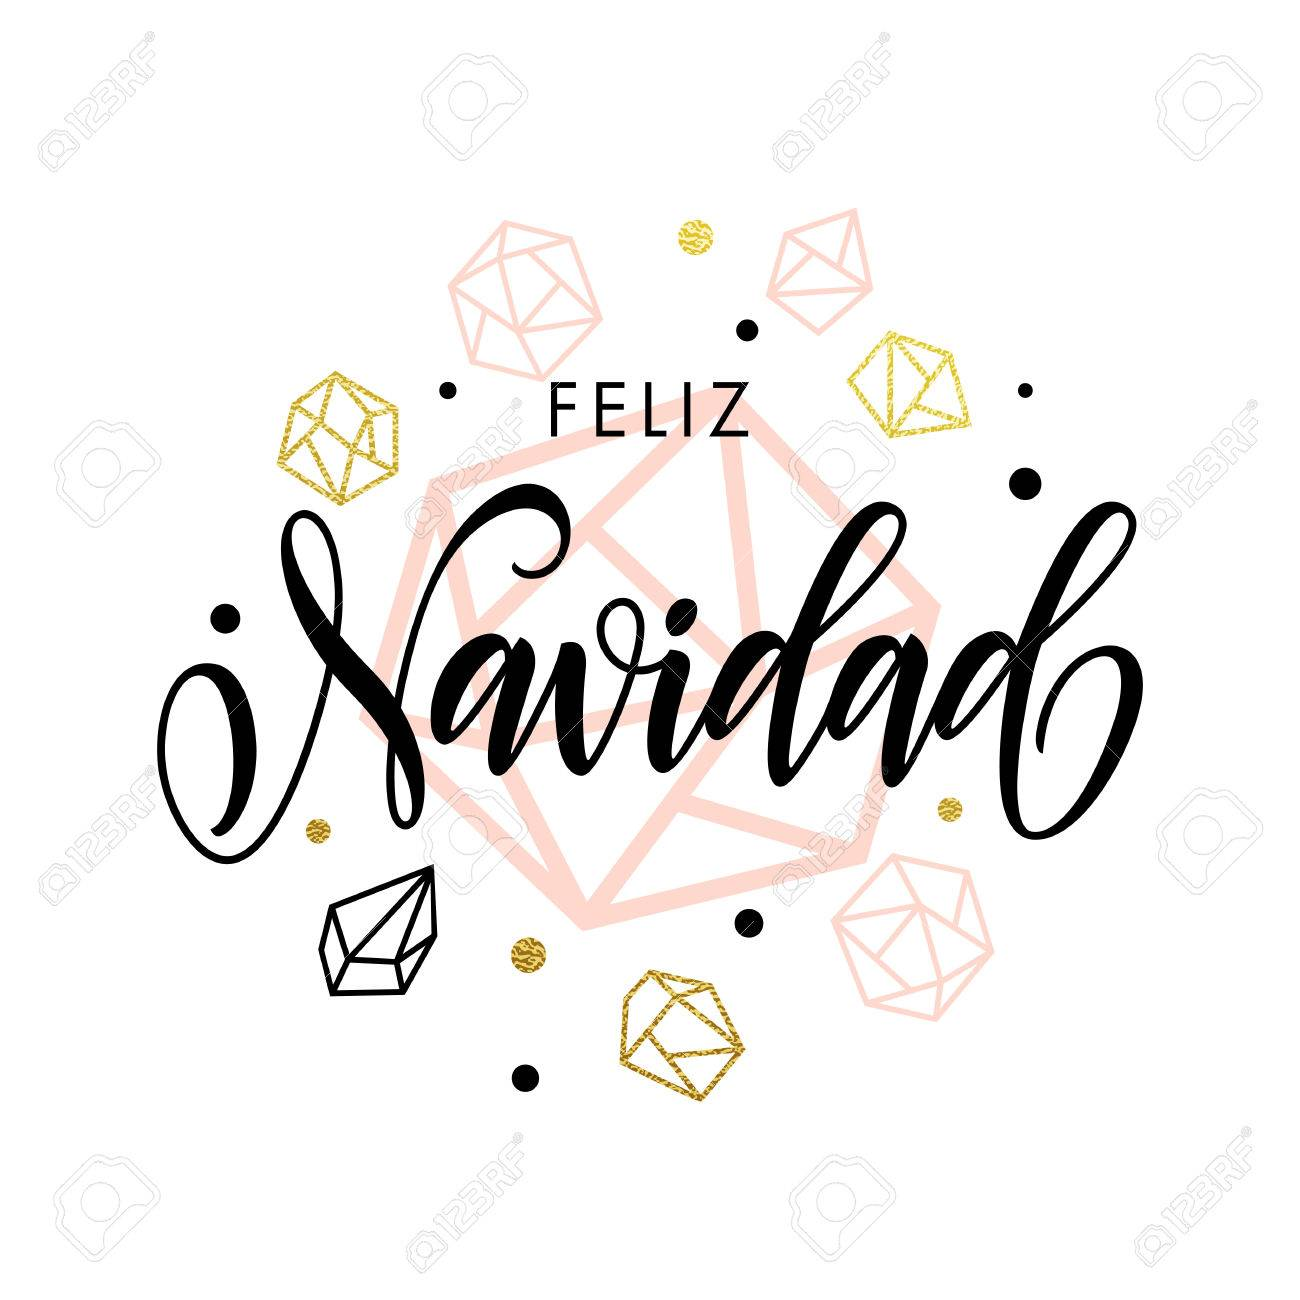 spanish merry christmas feliz navidad greeting card with calligraphy